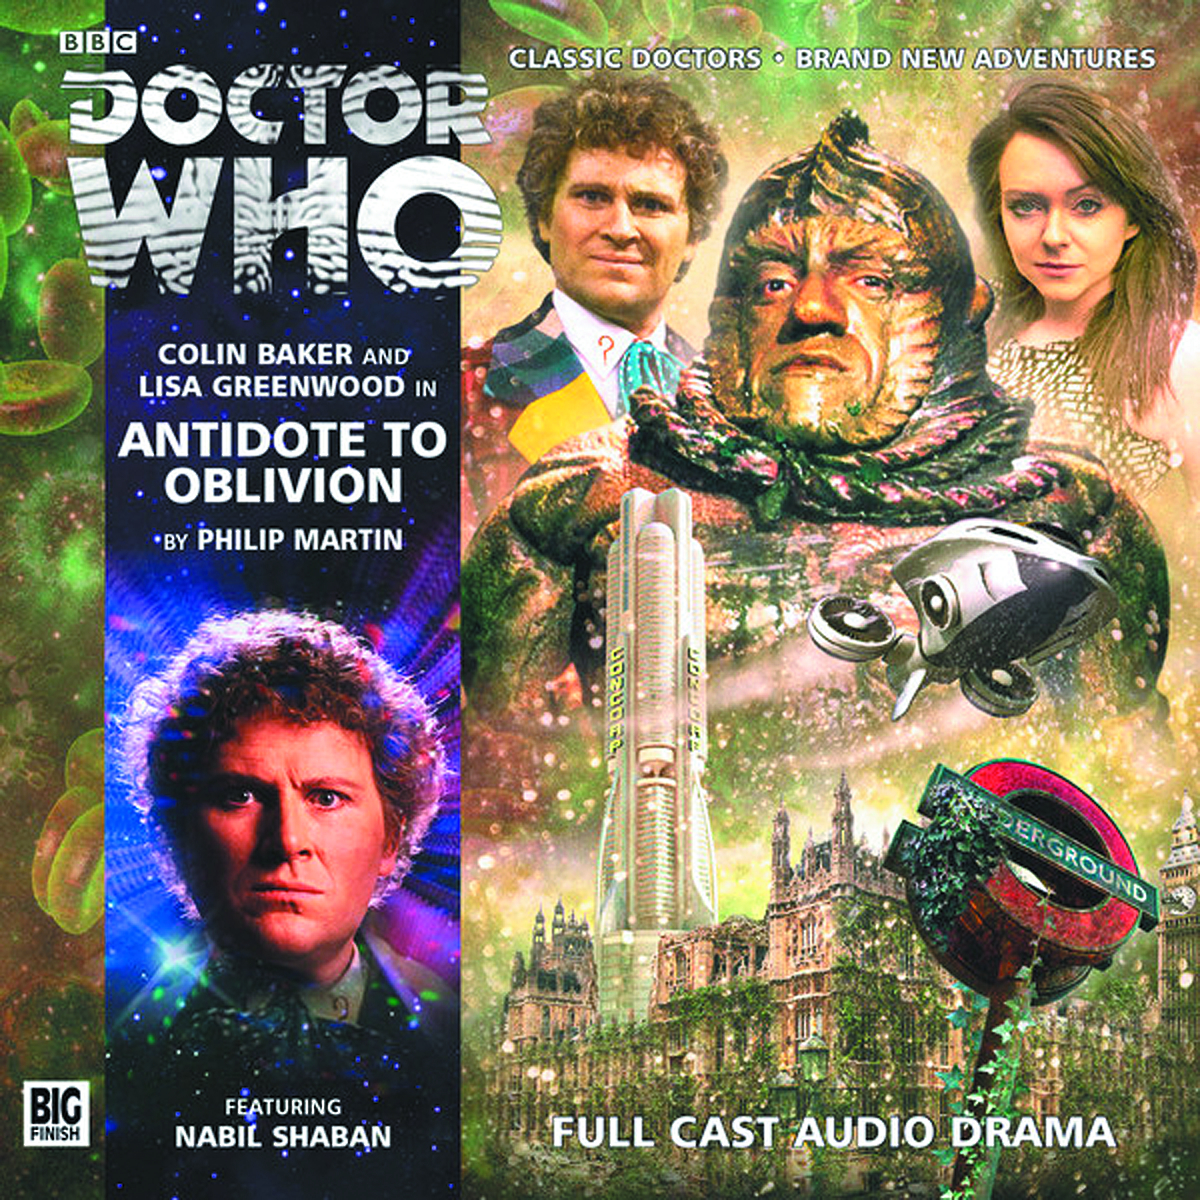 DOCTOR WHO ANTIDOTE TO OBLIVION AUDIO CD